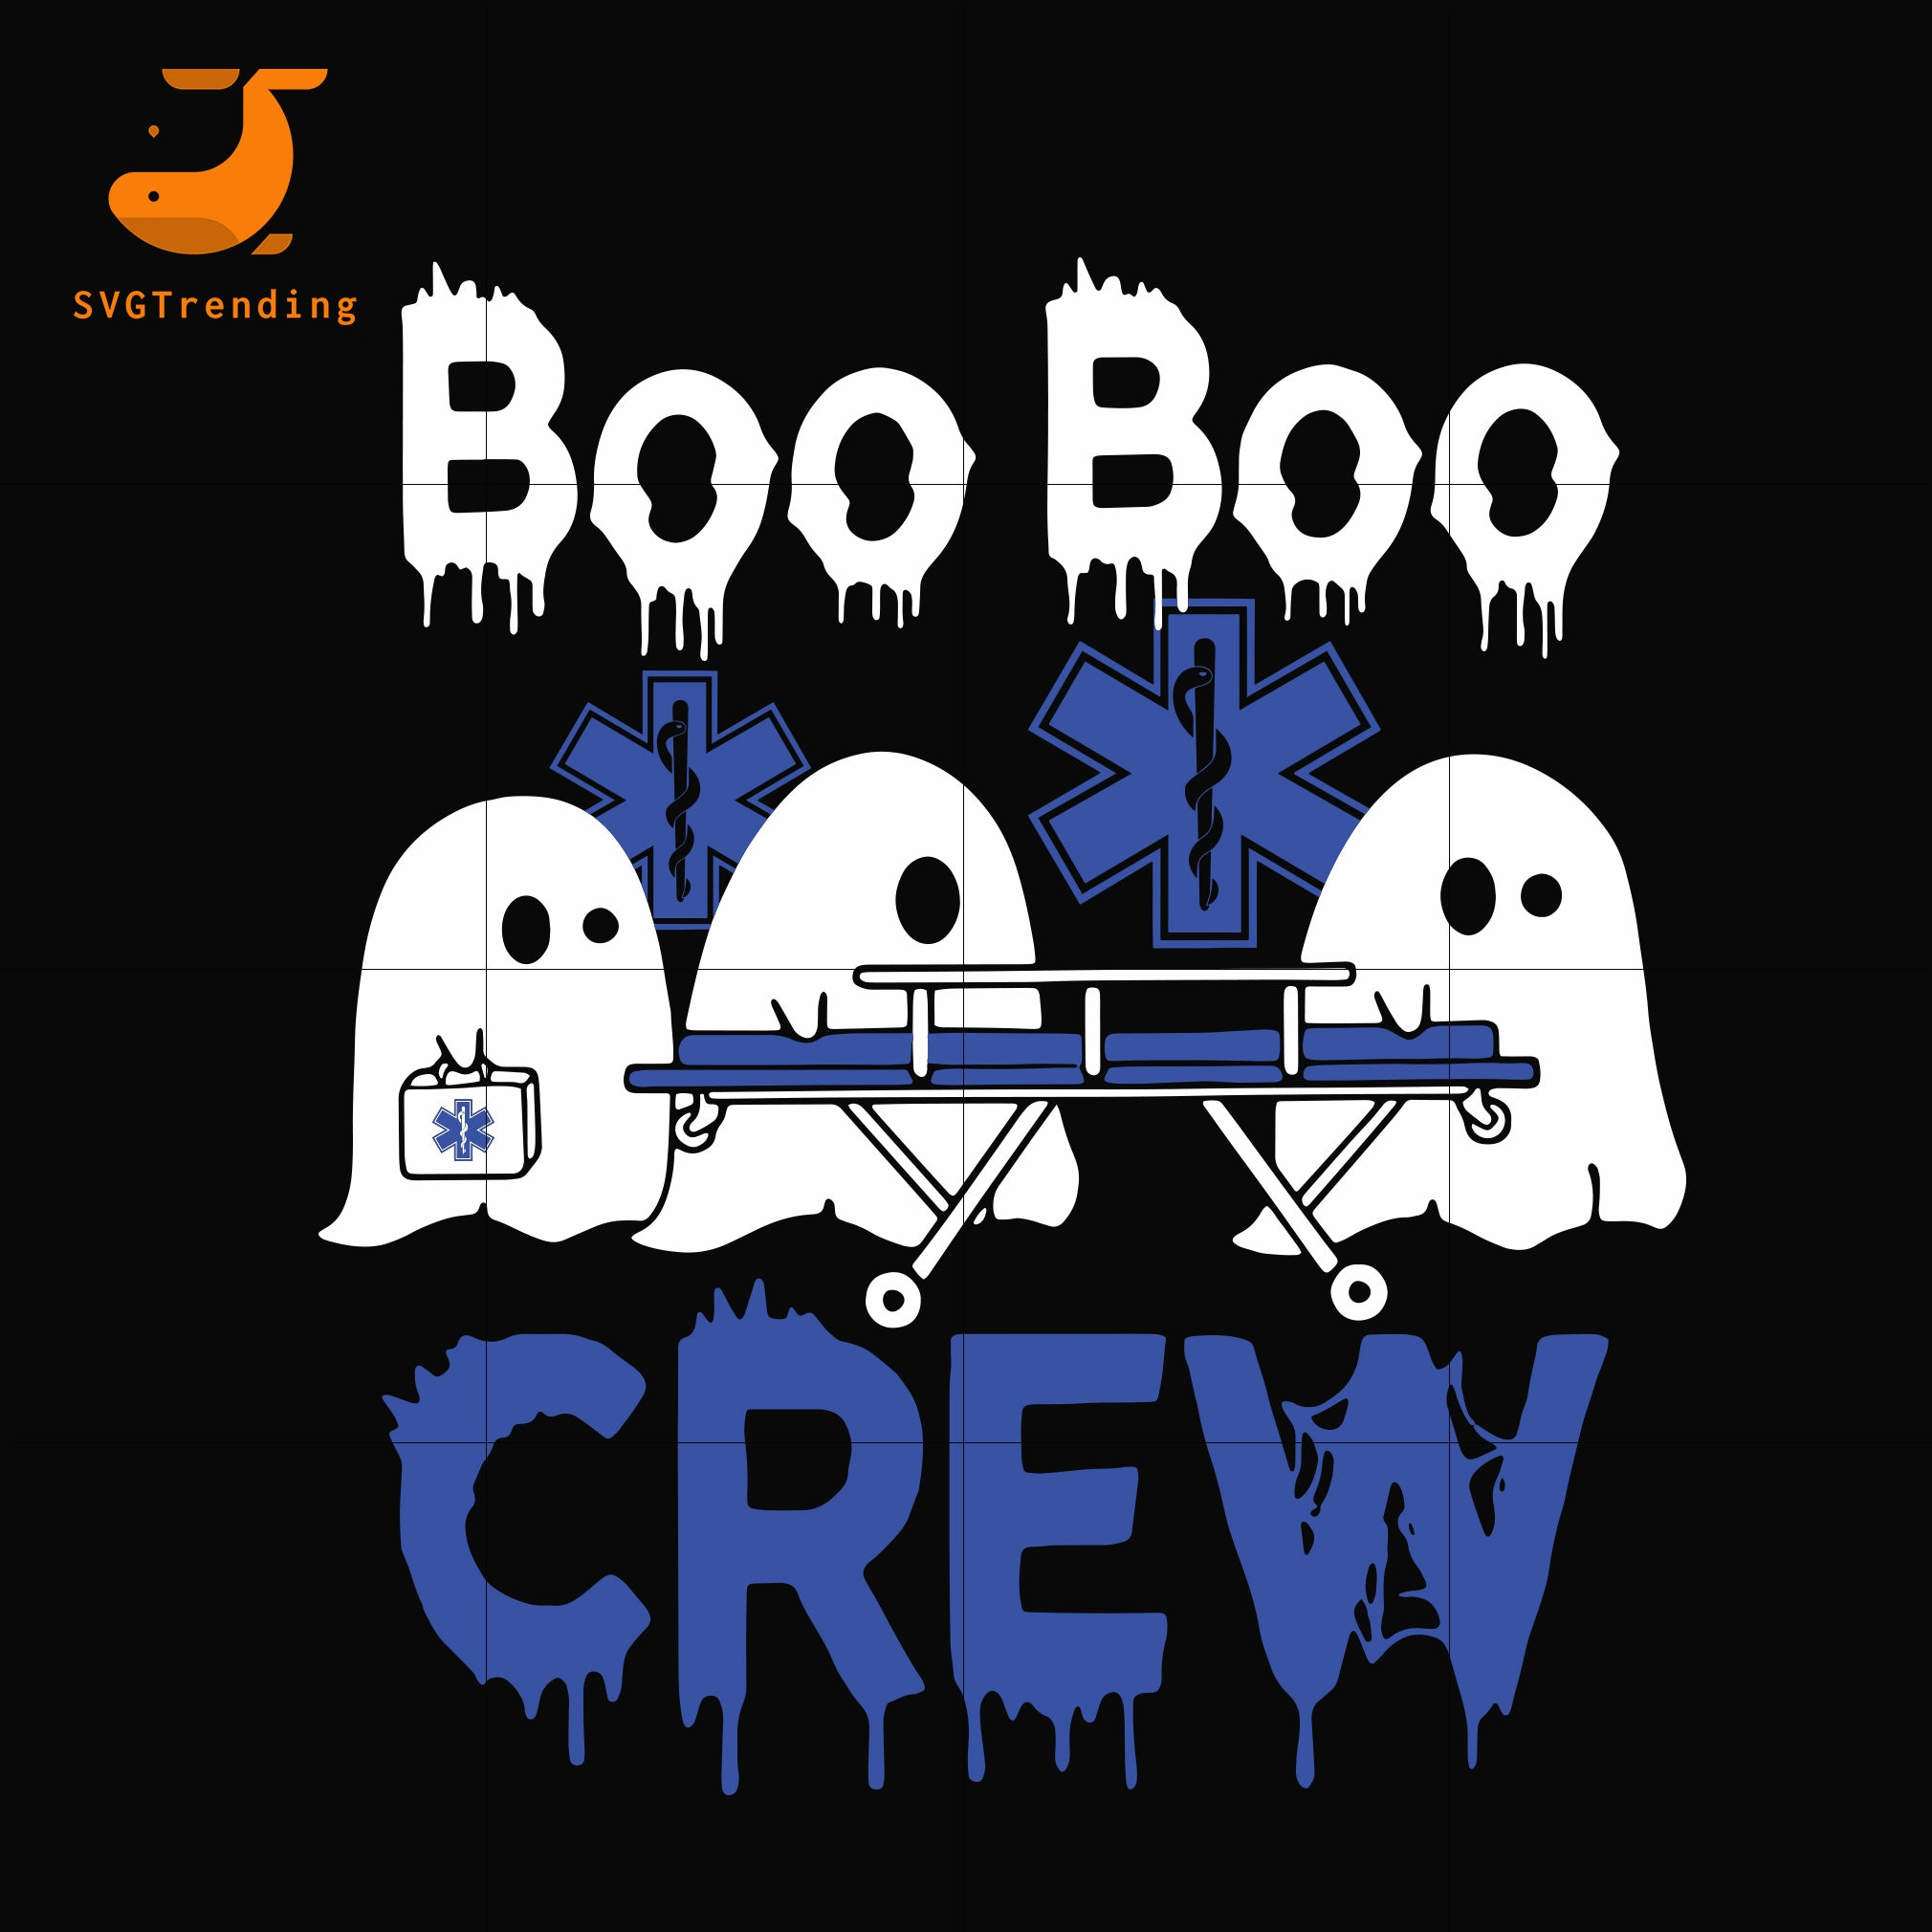 Boo boo crew svg, png, dxf, eps digital file HLW0092